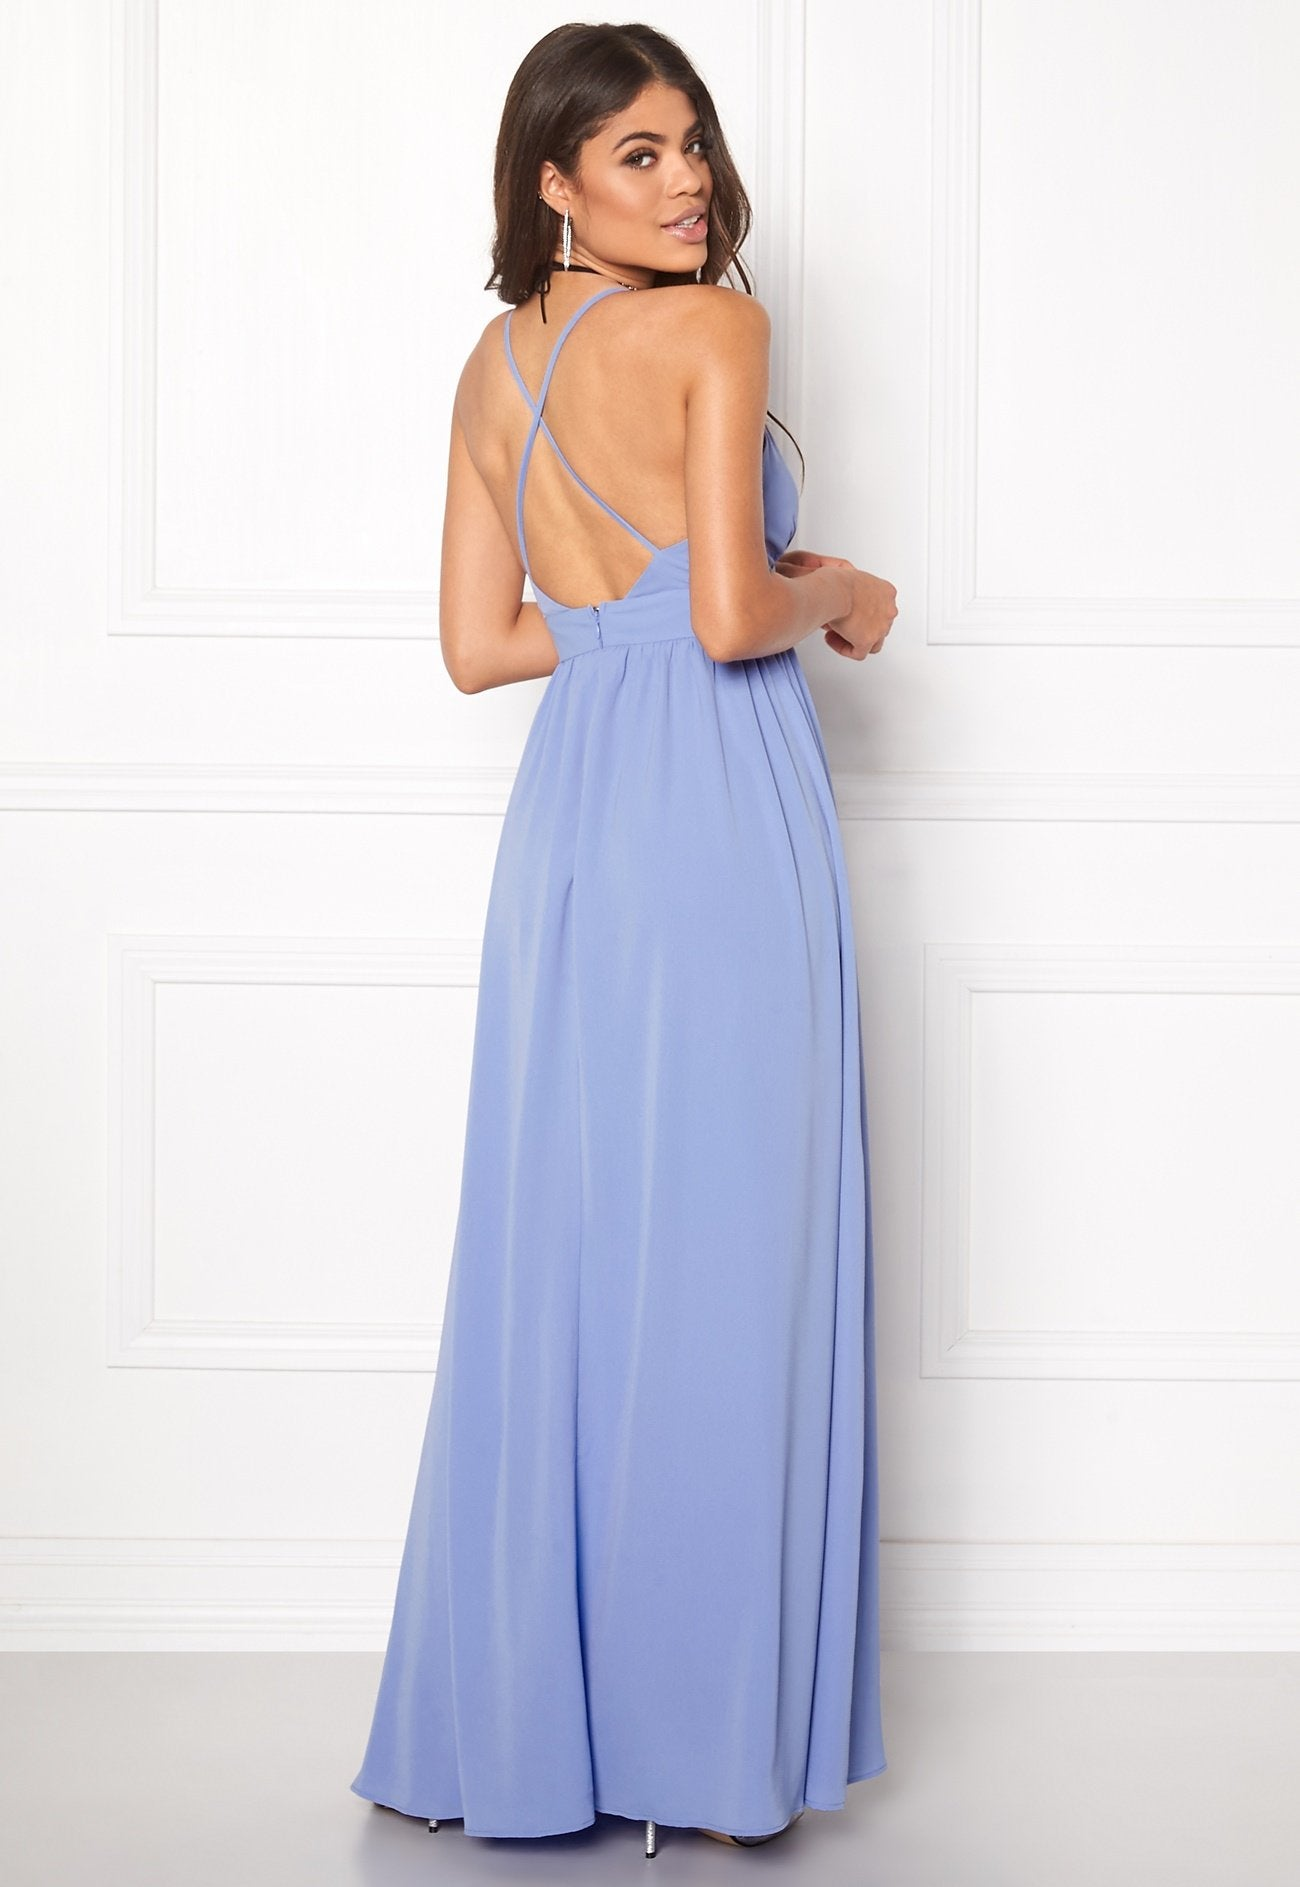 Dry Lake Blue Love Dress - Mojo Independent Store